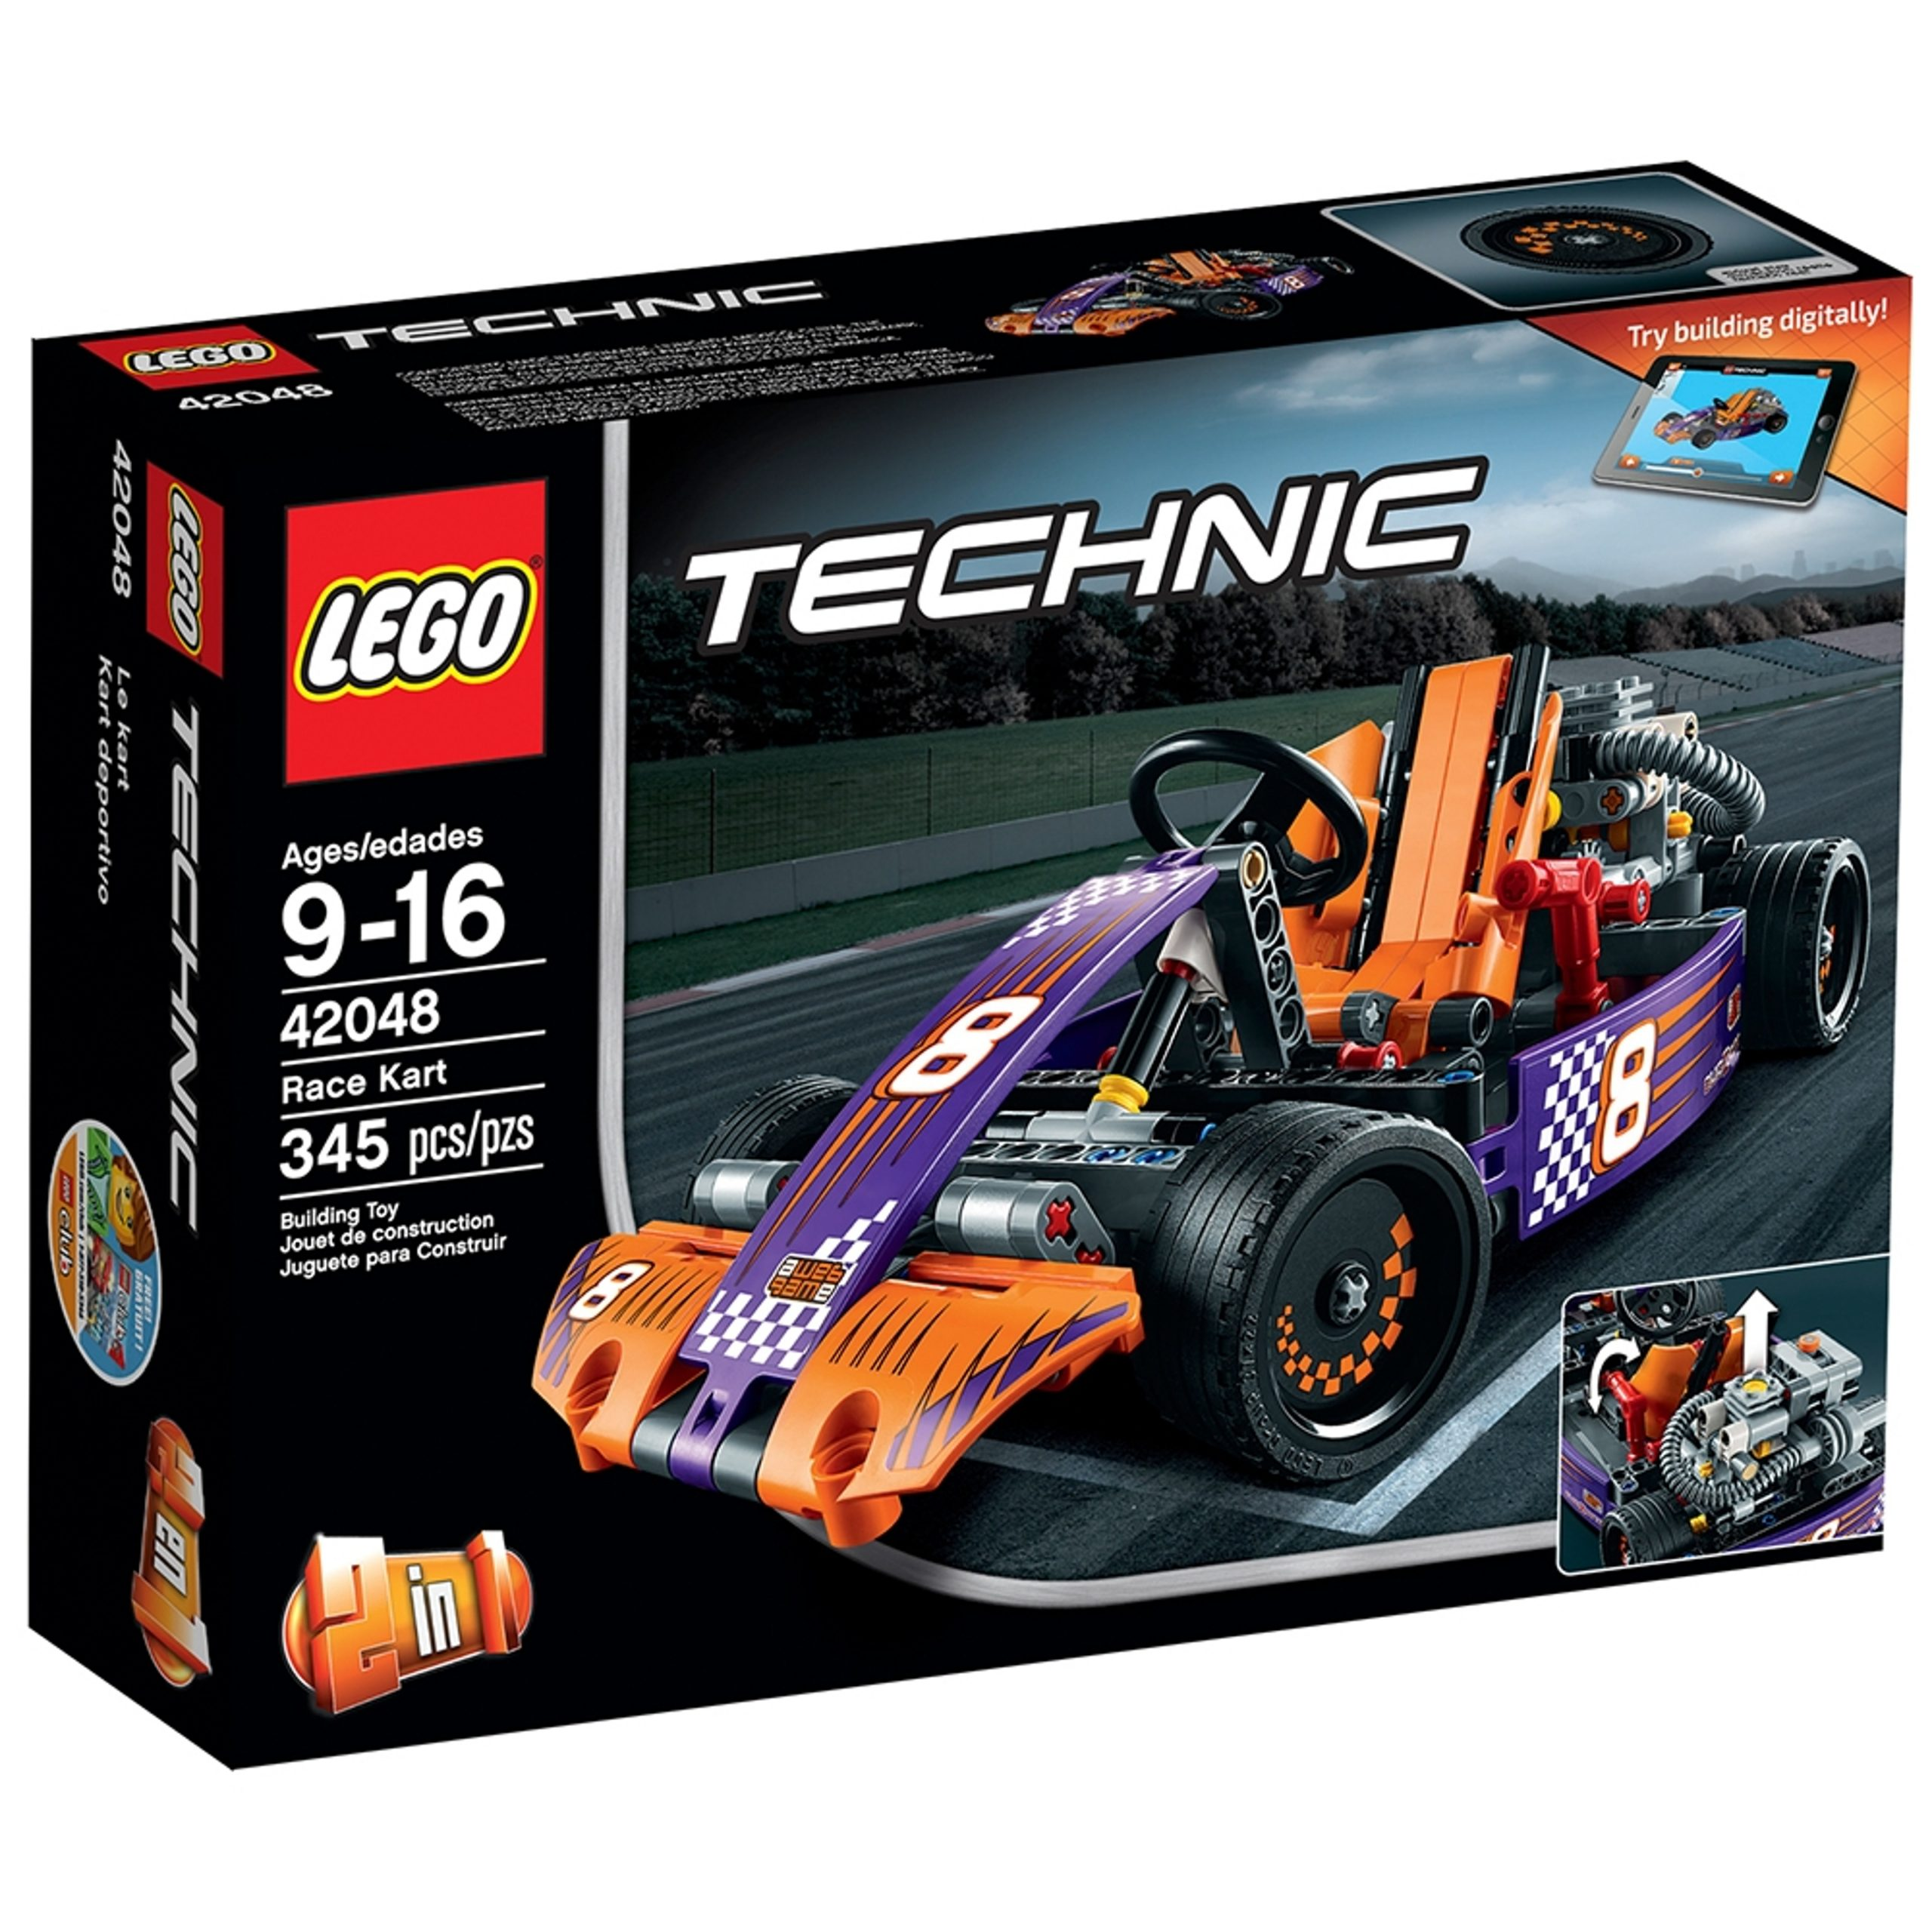 lego 42048 race kart scaled